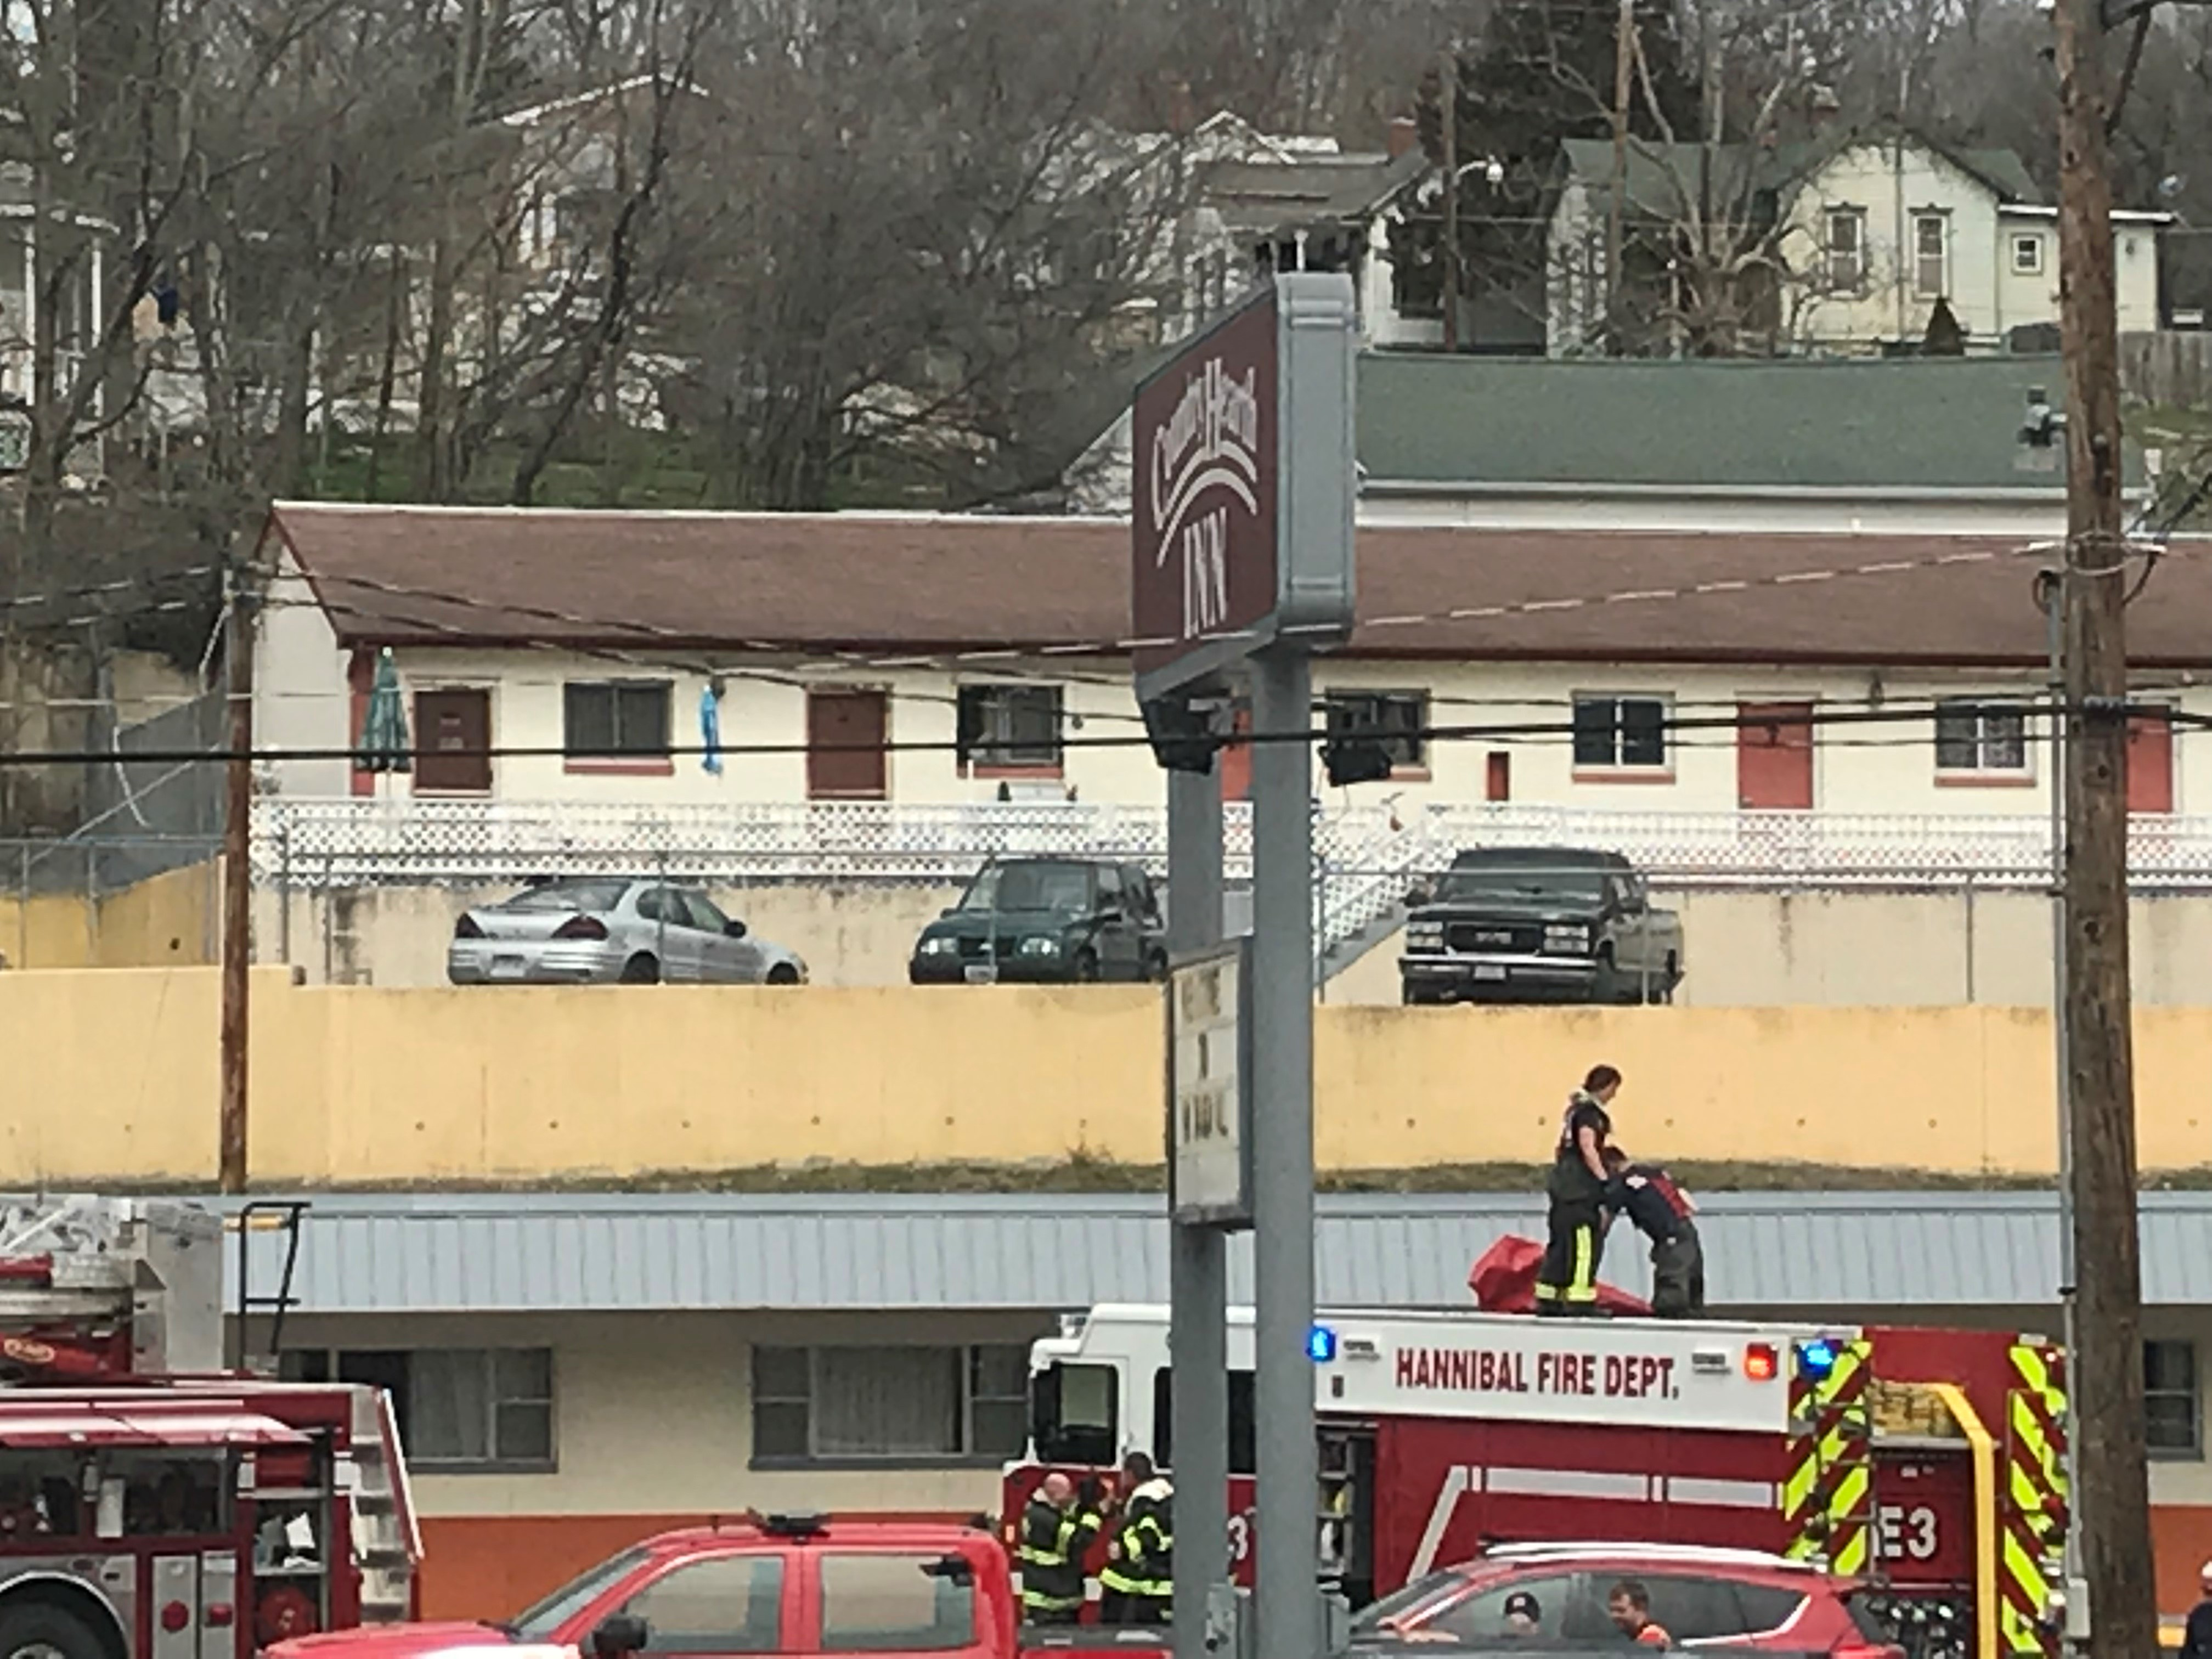 Firefighters responded to the Country Hearth Inn on Mark Twain Avenue shortly before 1 p.m. Wednesday